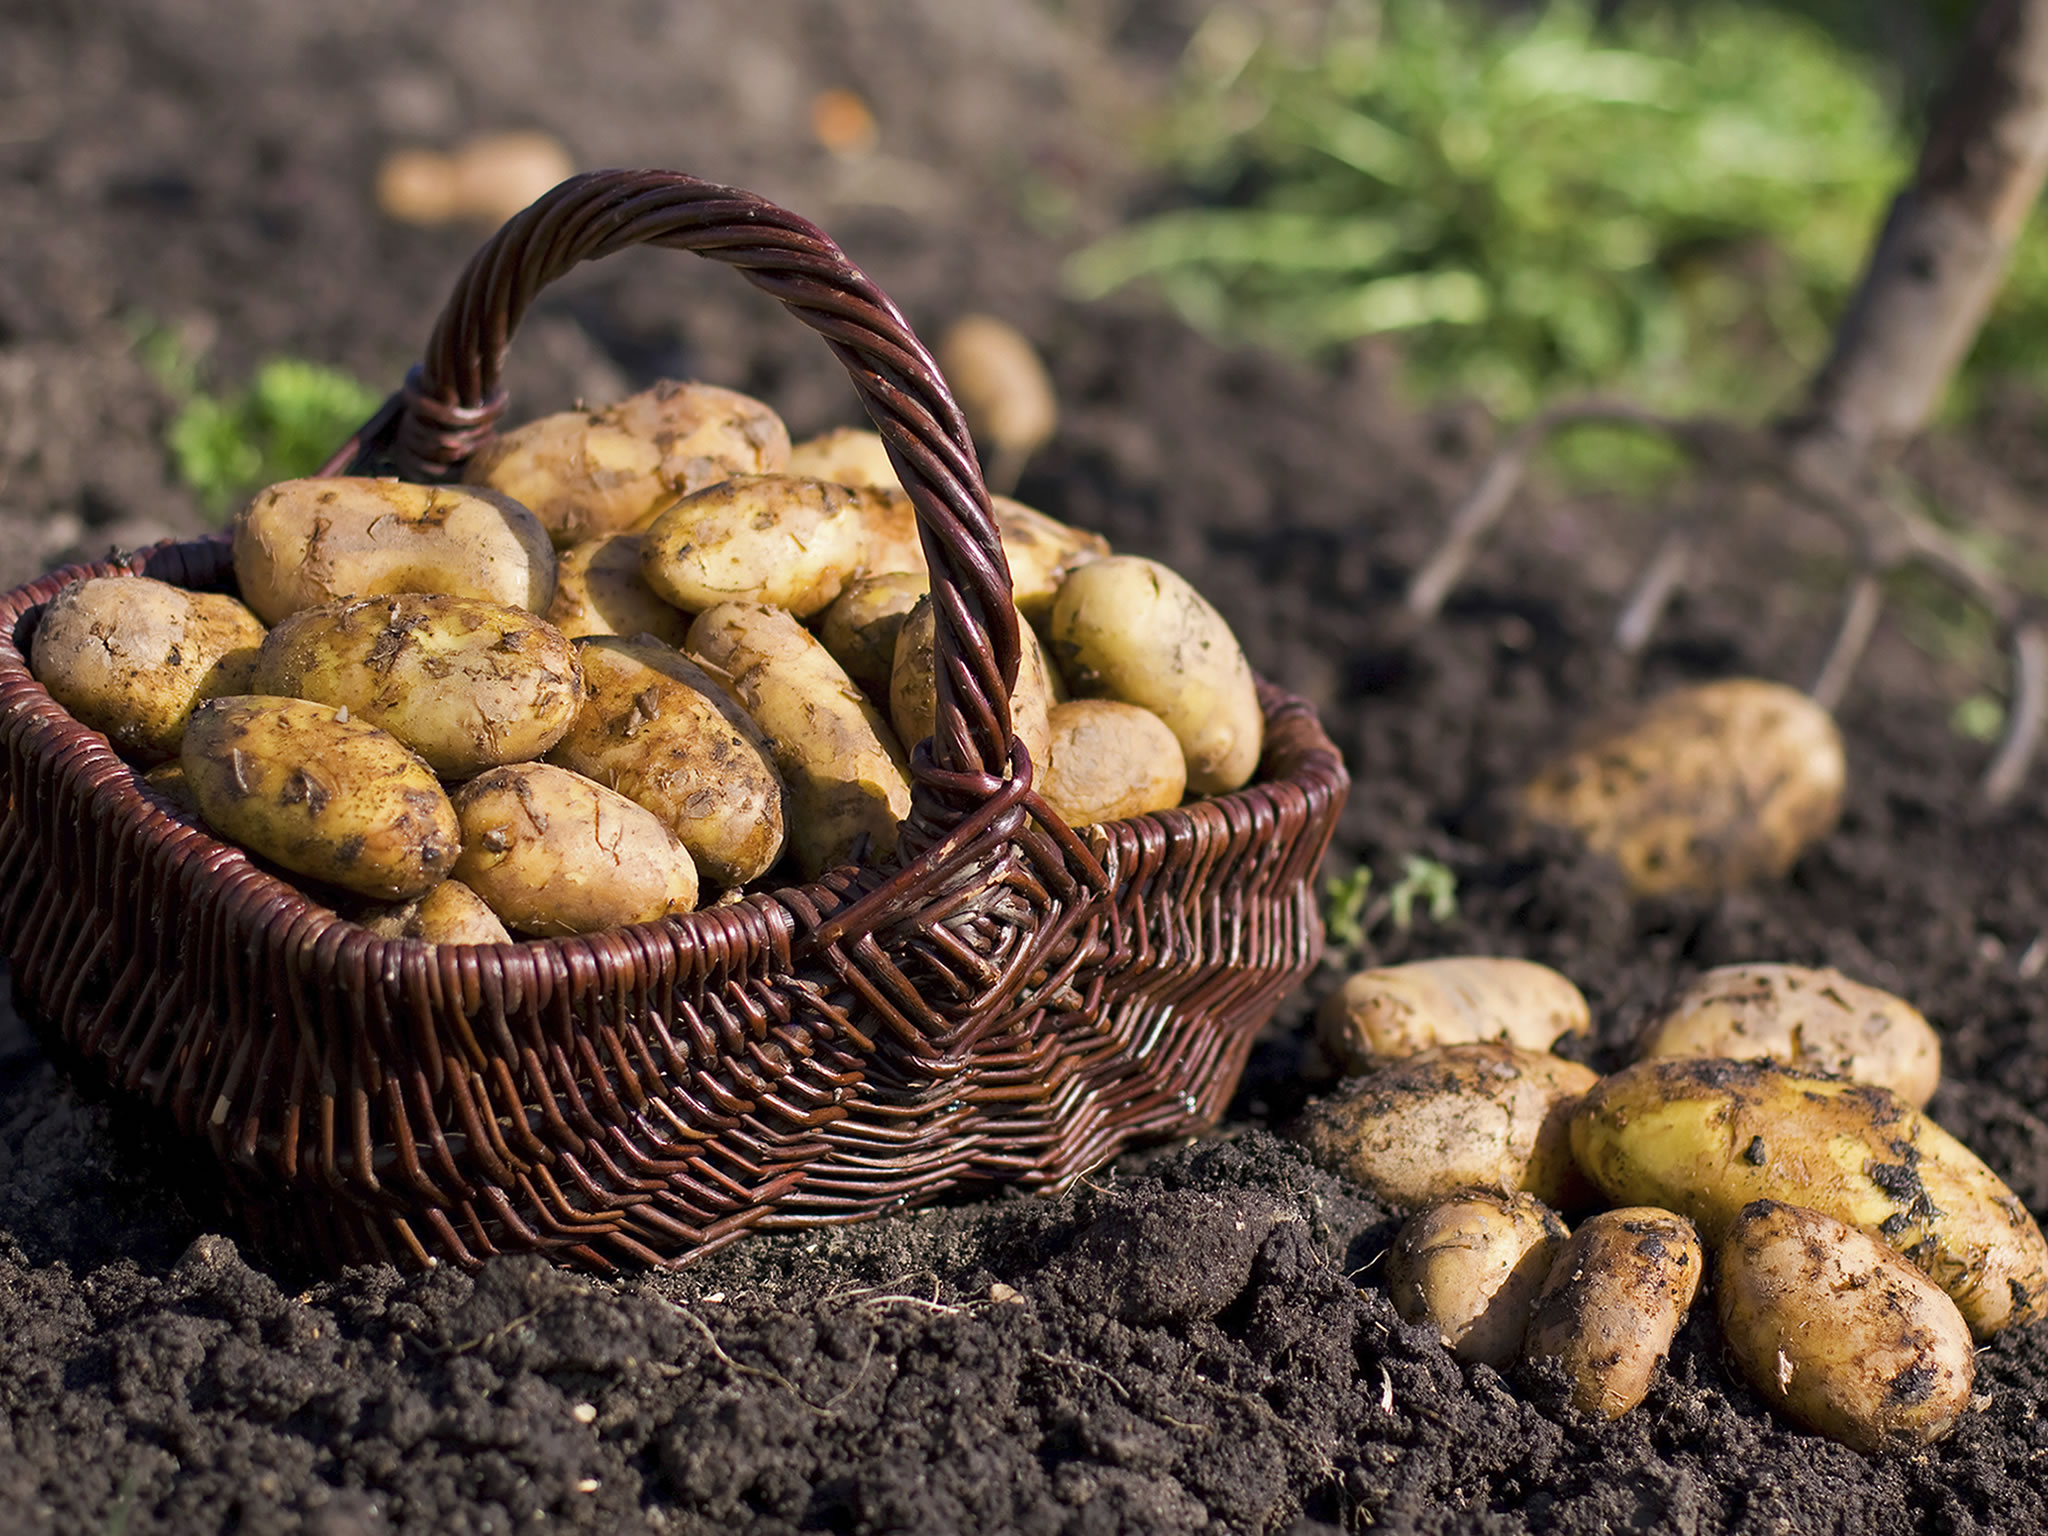 Top 5 Potato Producing Countries in the World